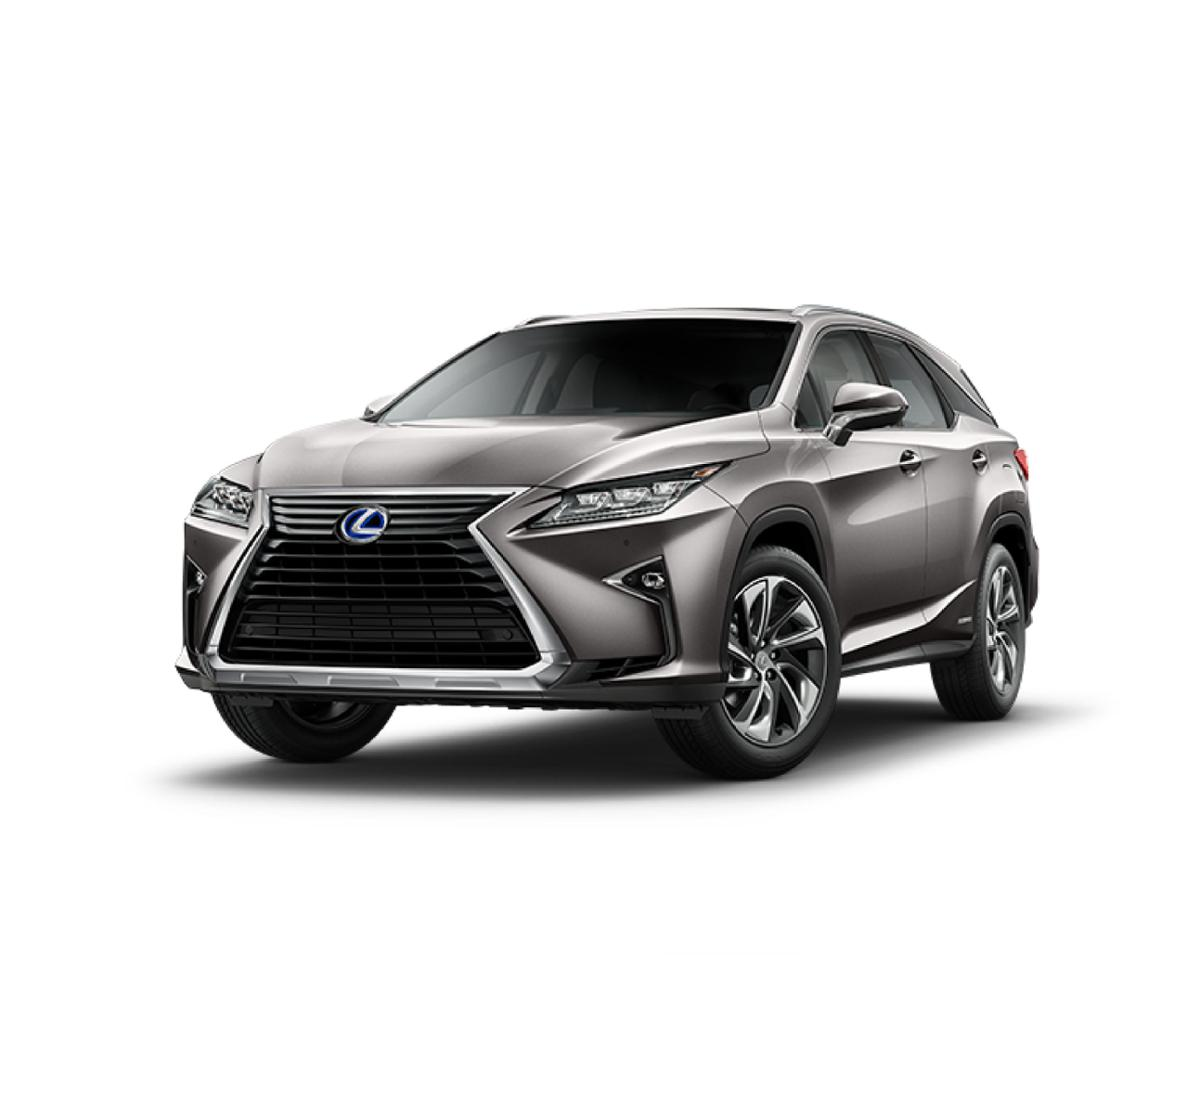 2018 Lexus RX 450hL Vehicle Photo in Santa Barbara, CA 93105